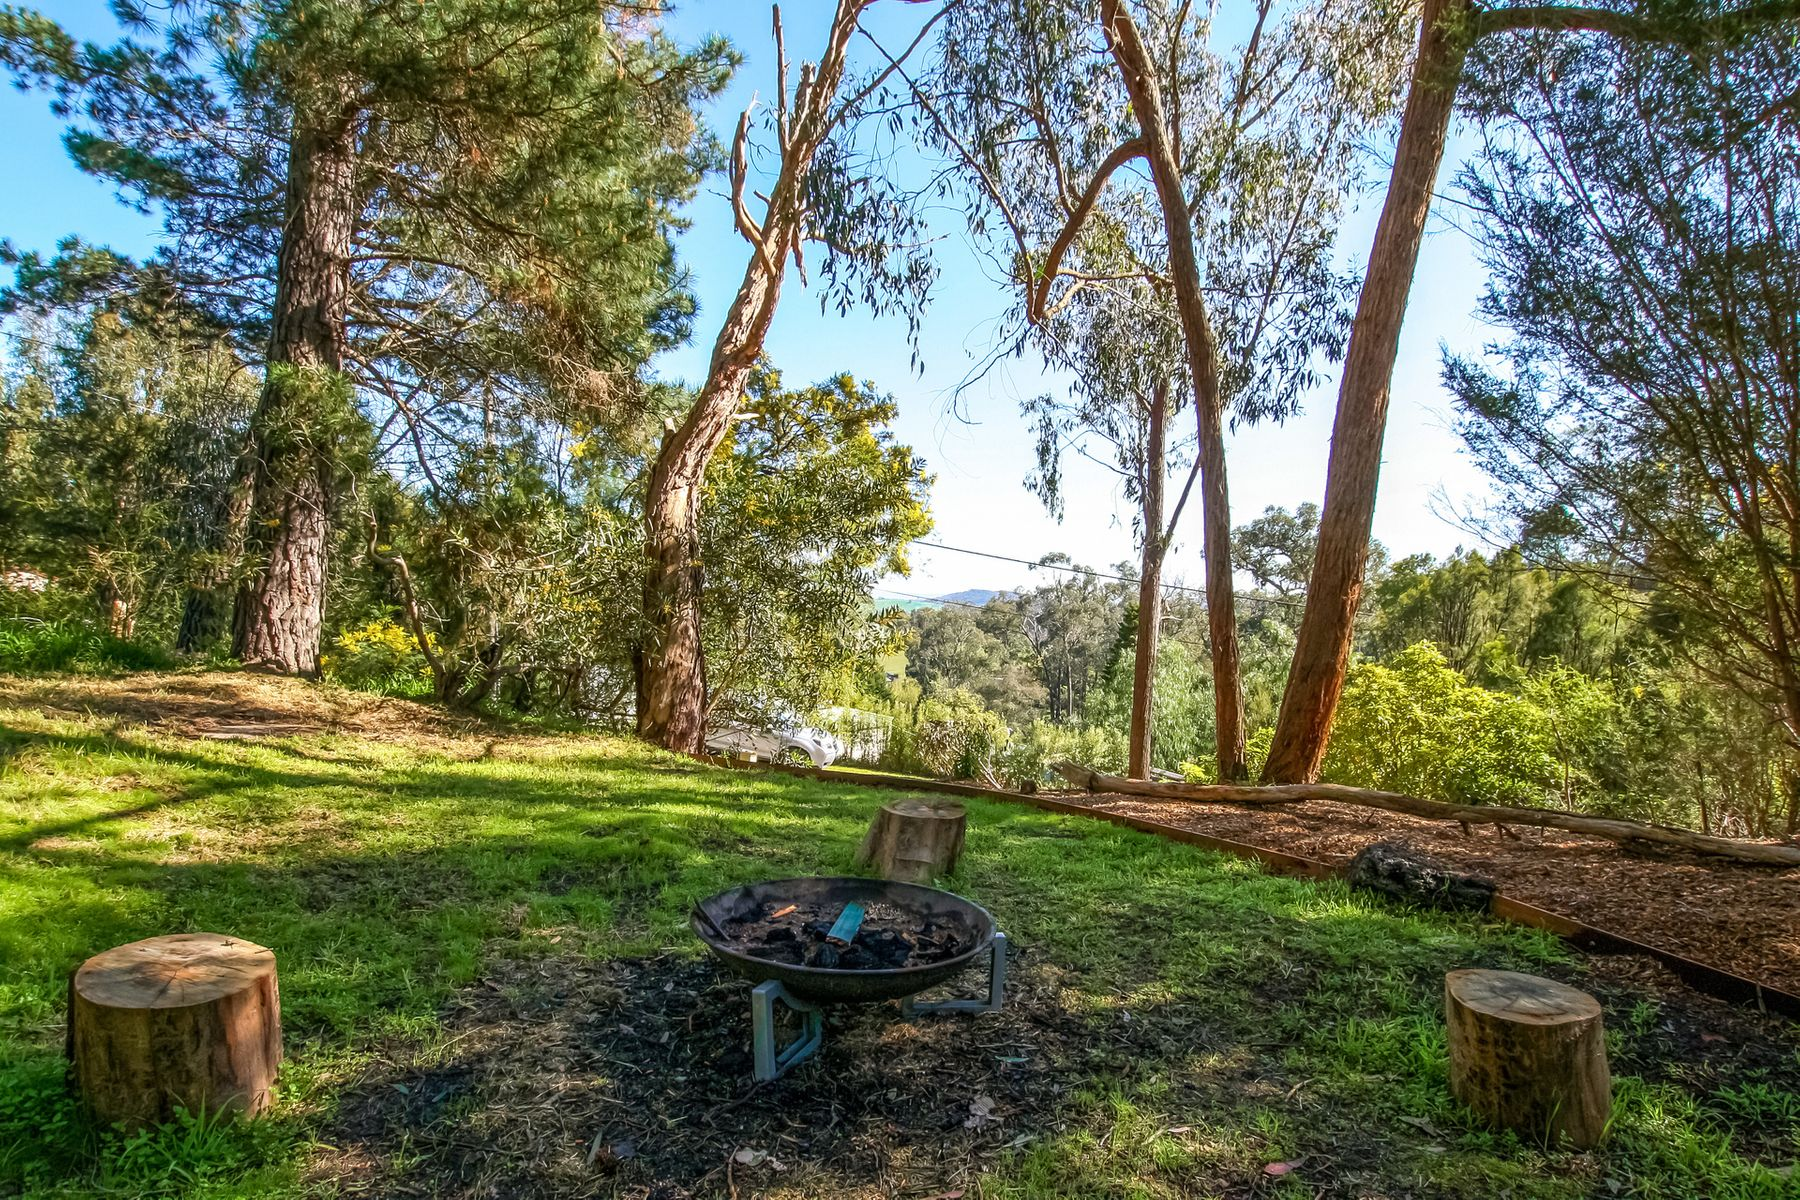 20 Baden Powell Drive, Healesville, VIC 3777